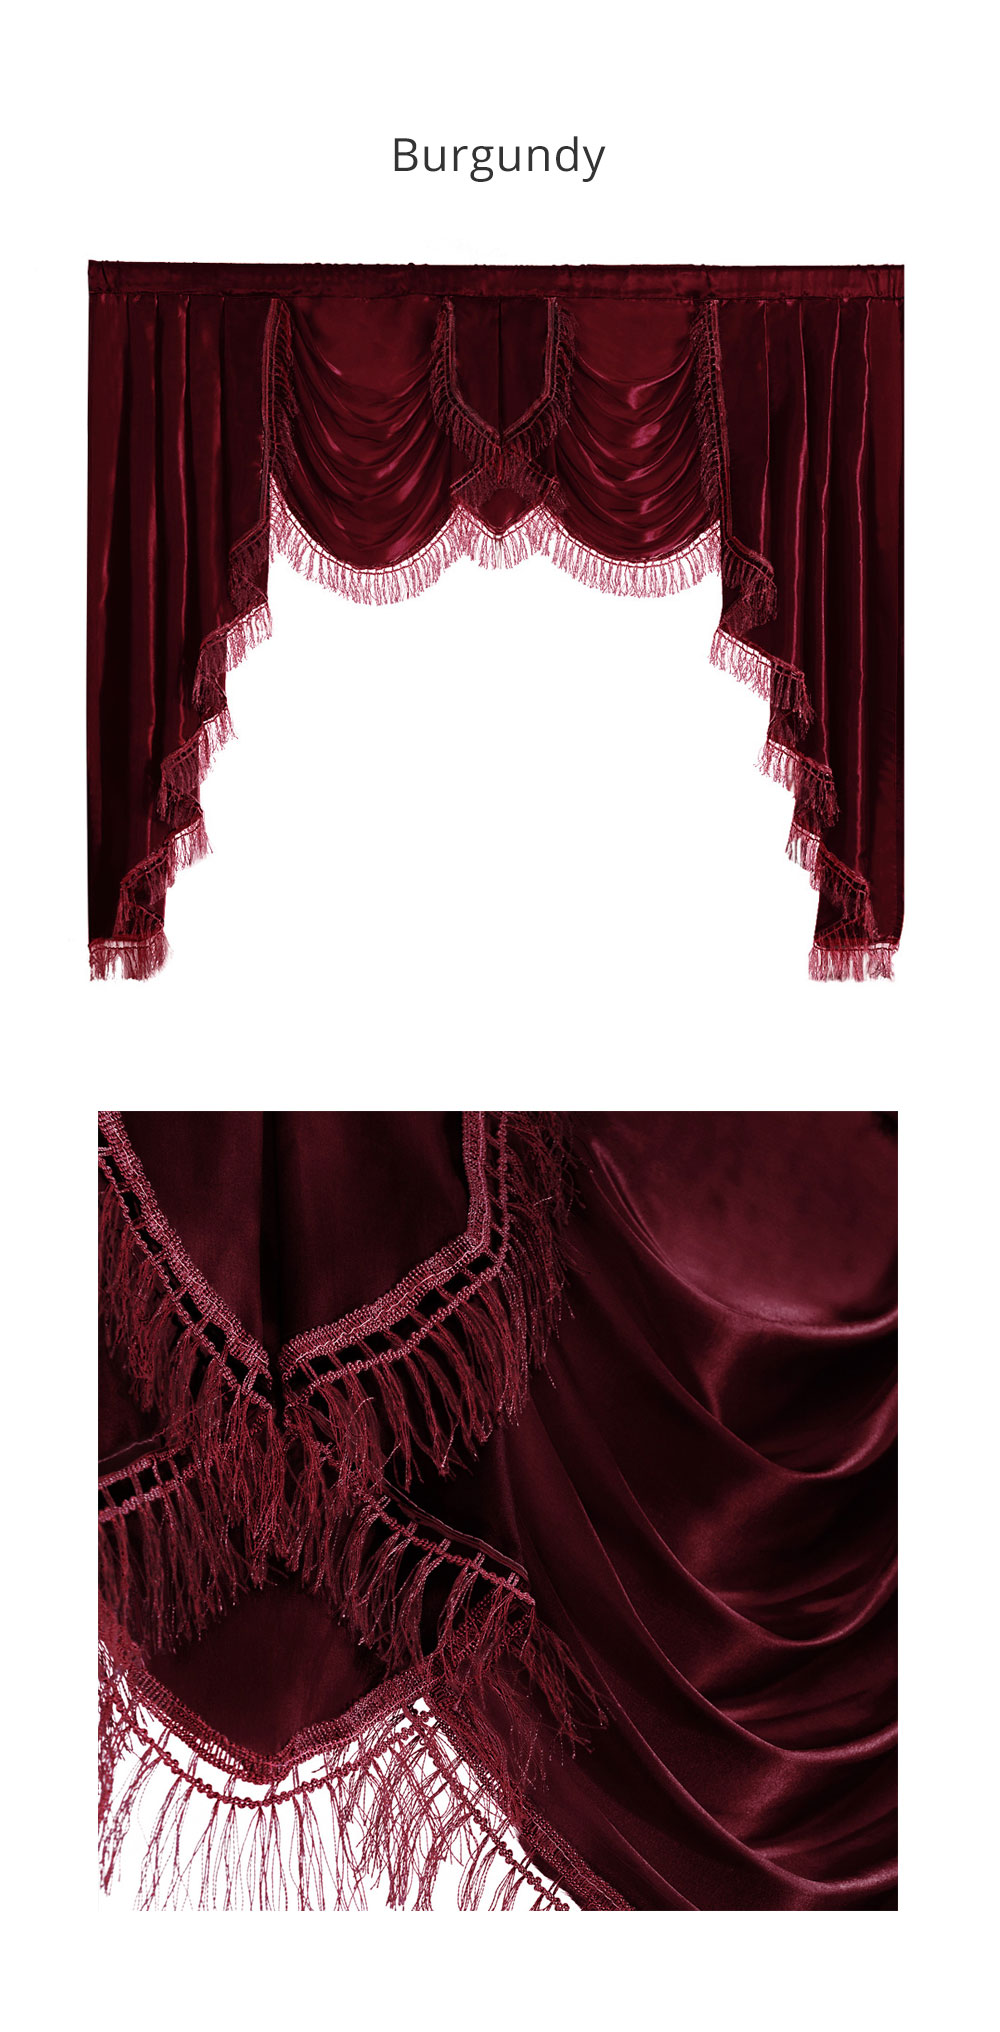 ZSBQ-BMD NAPEARL Luxury Valance Curtains Short Solid Color Drops For Bedroom European Style Semi Shade Fabric Elegant Panel Decor Rustic (4)